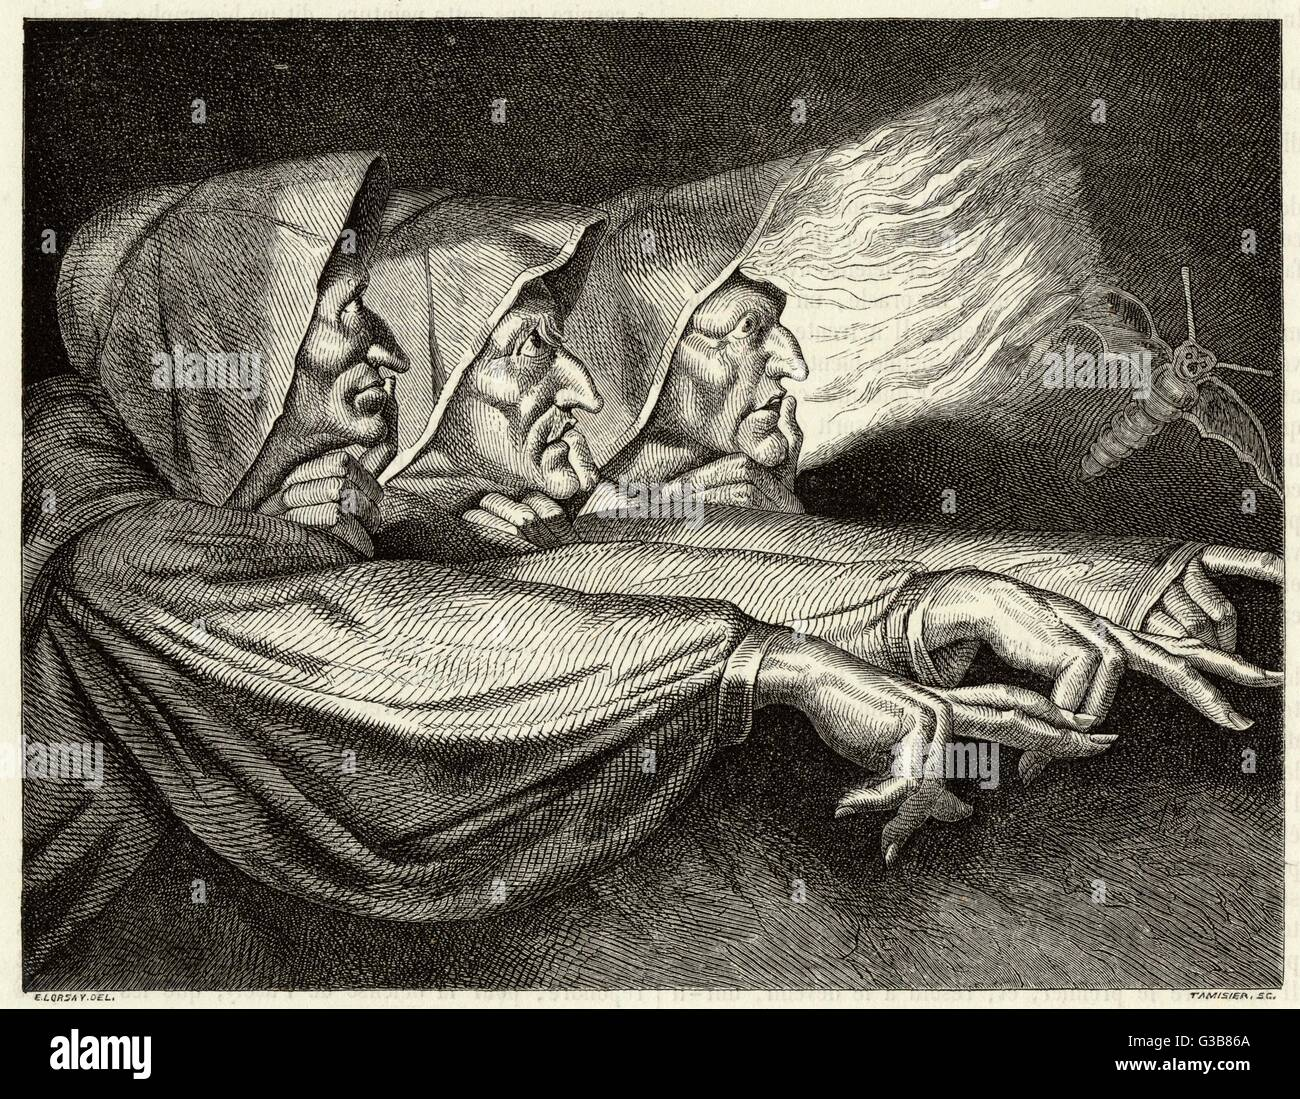 The witches        Date: 1863 - Stock Image